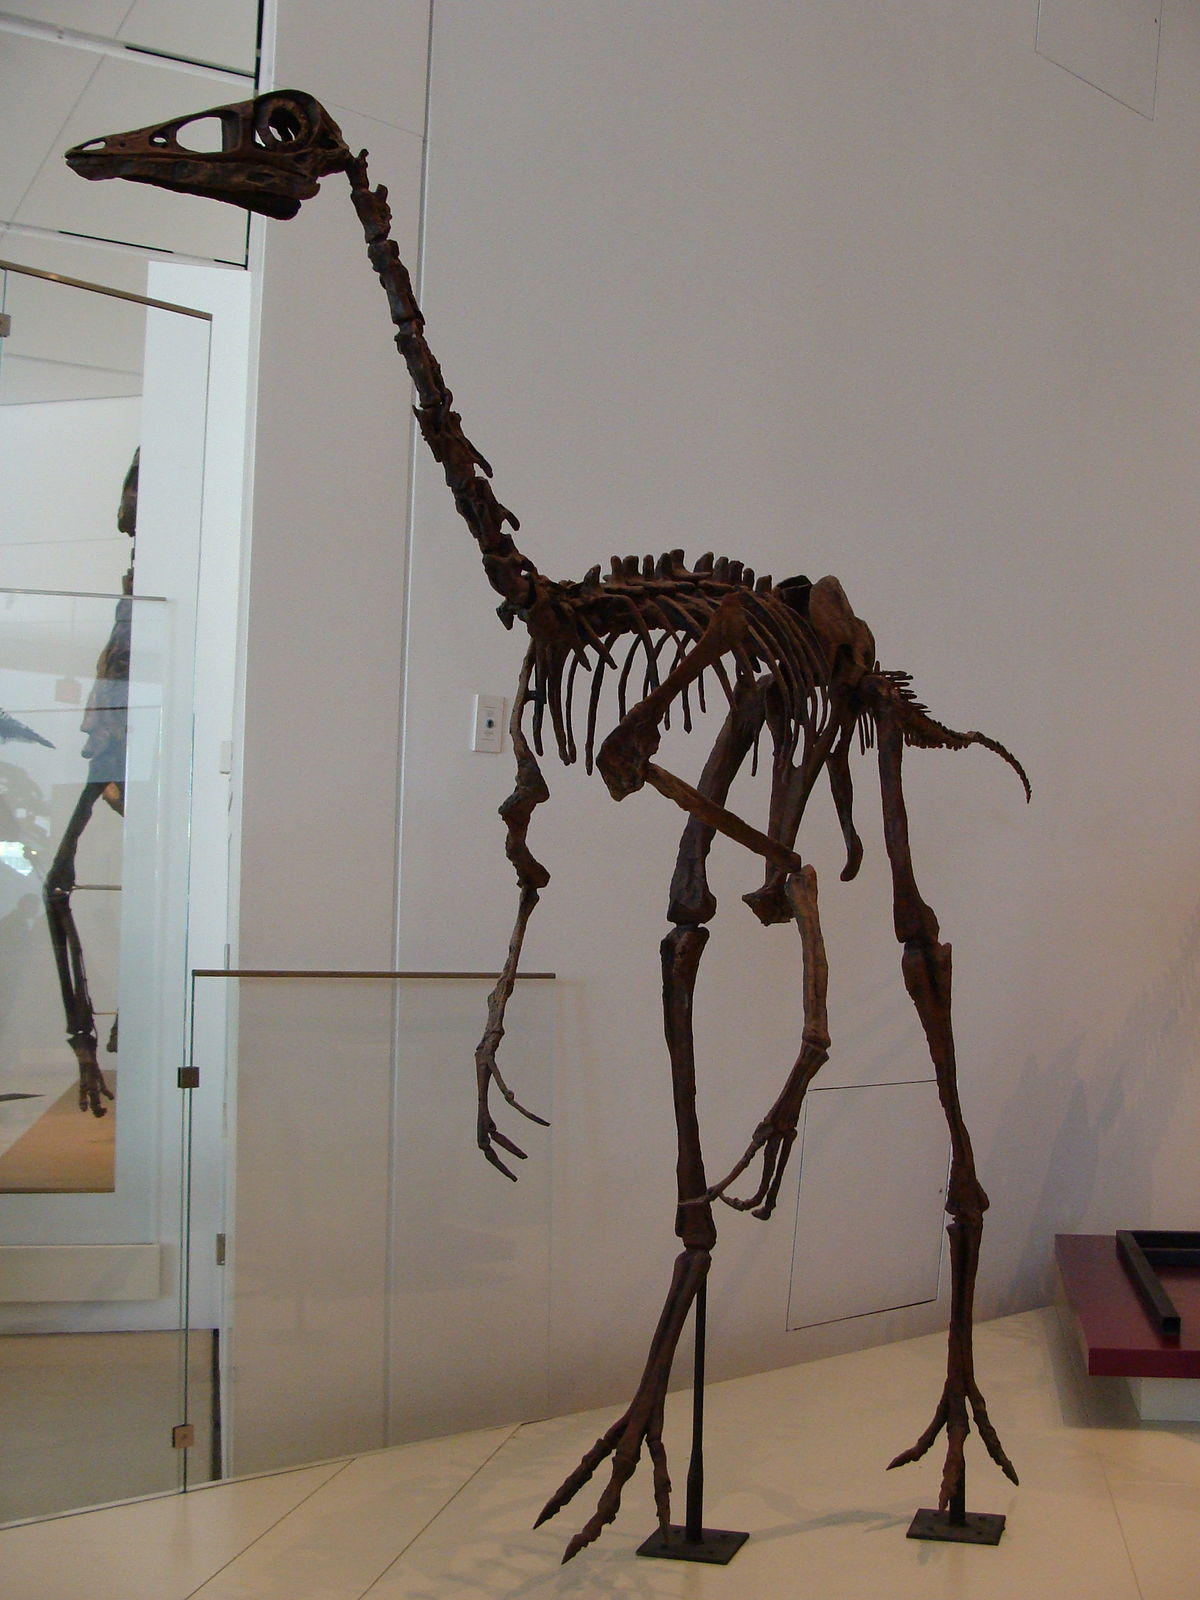 Photos: Ornithomimus